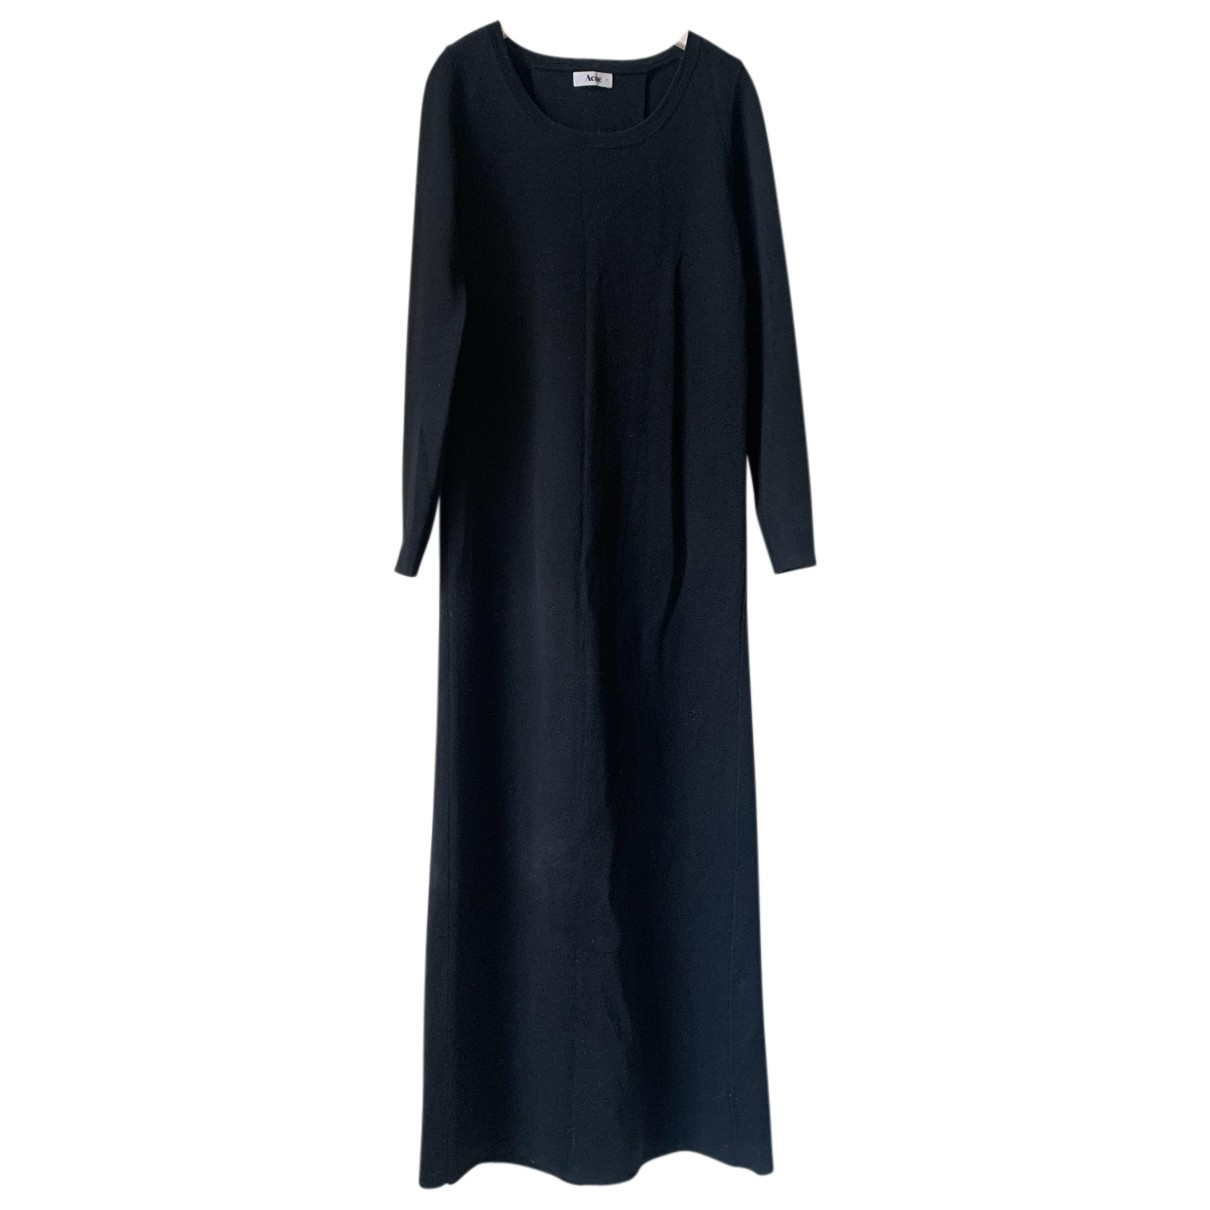 Acne Studios N Black Wool dress for Women 36 FR